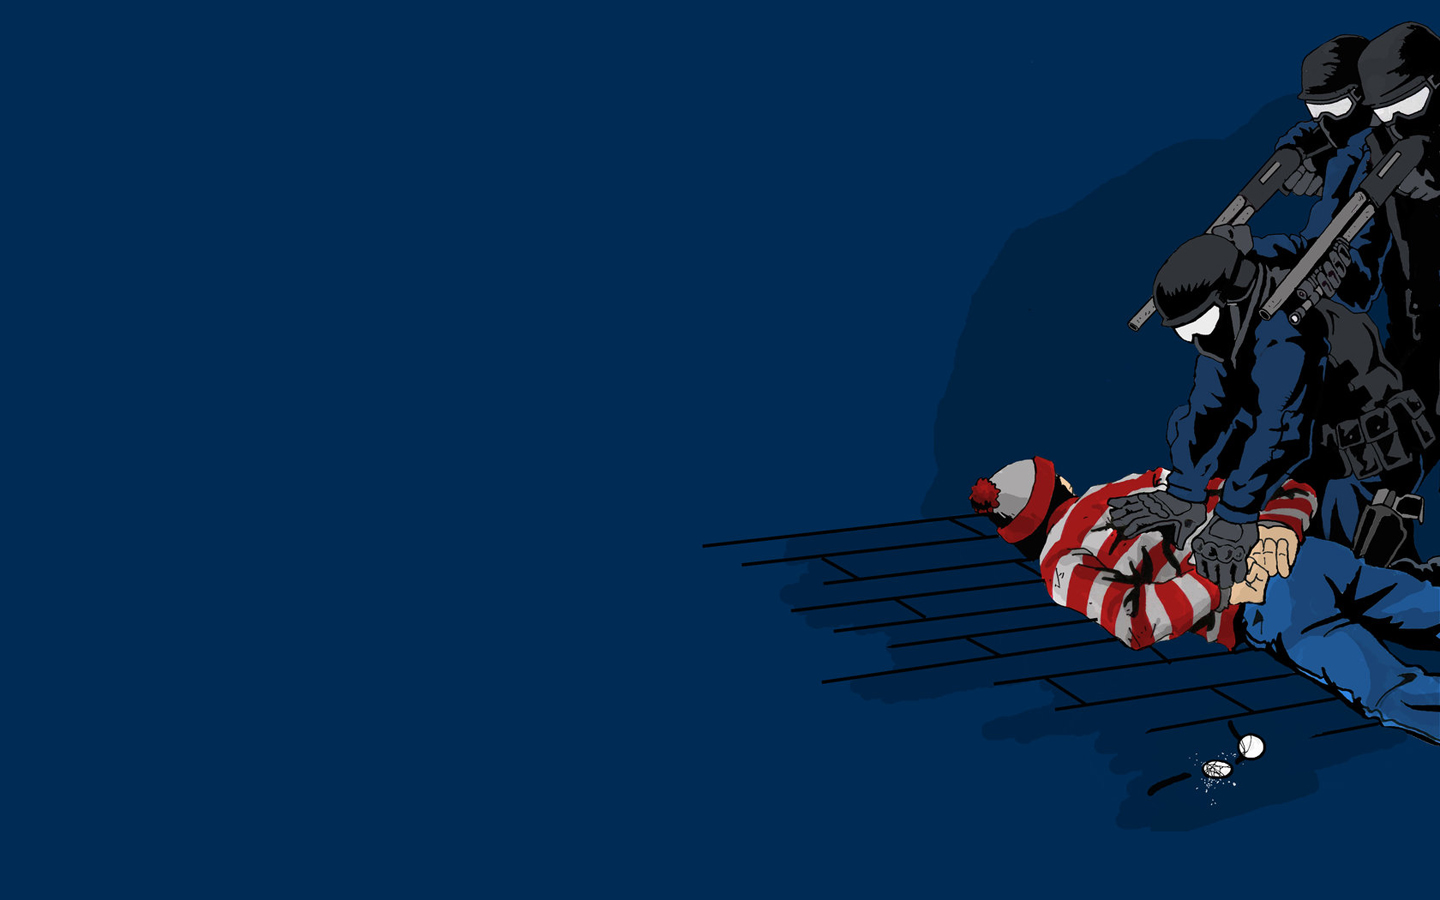 Wheres Waldo Wallpaper and Background 1440x900 ID247898 1440x900